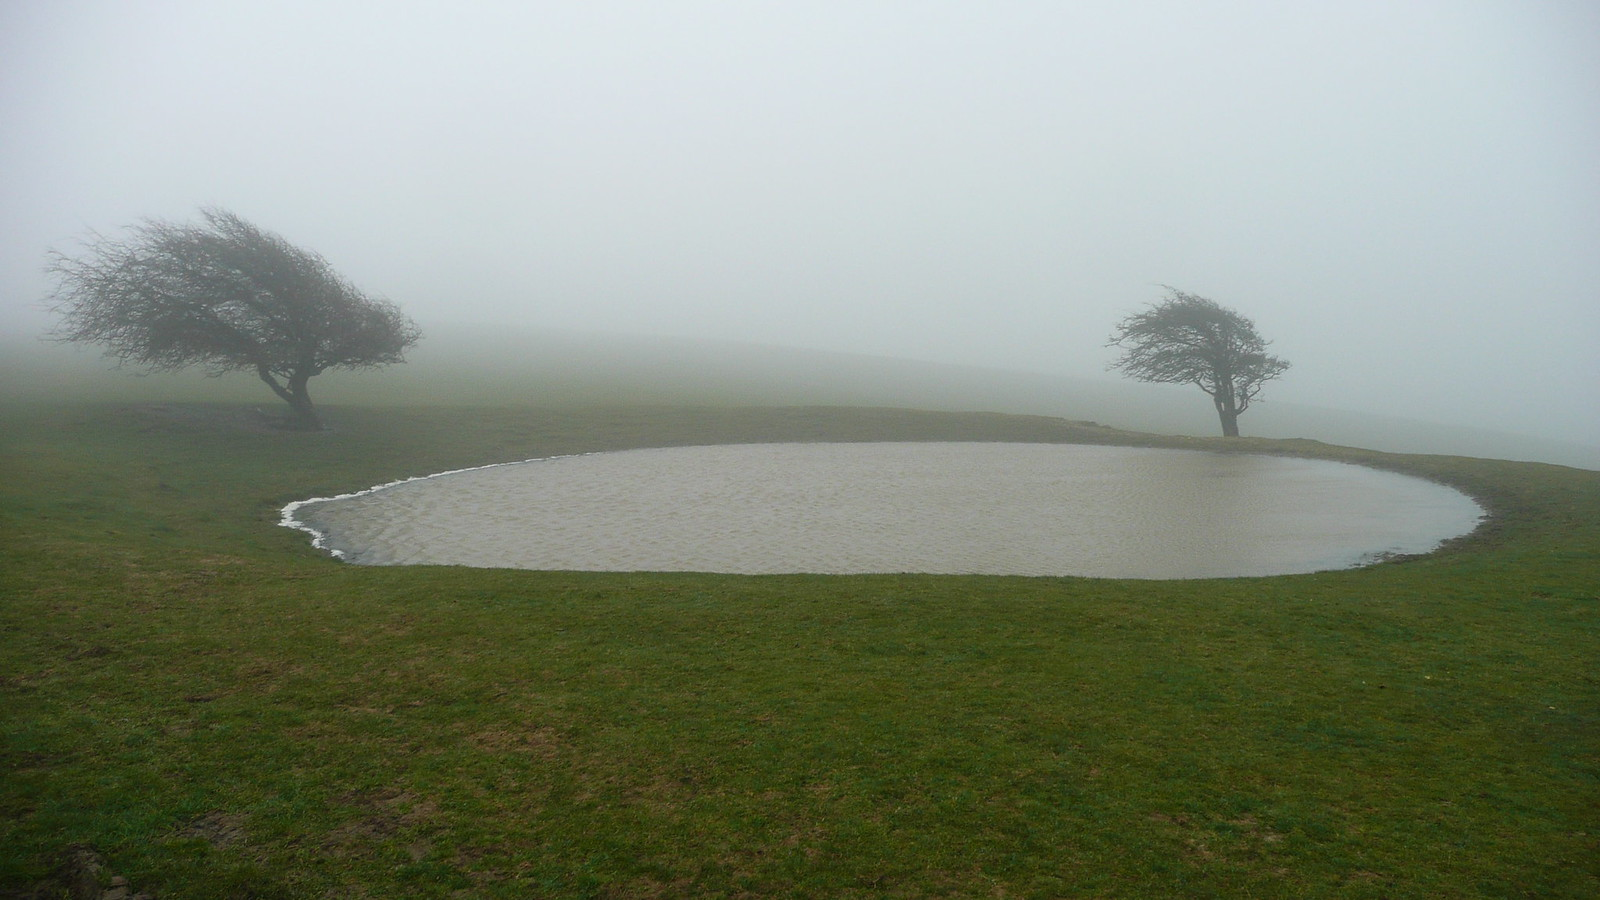 Dew pond Views of the South Downs (28th March 2015, low cloud, gales)